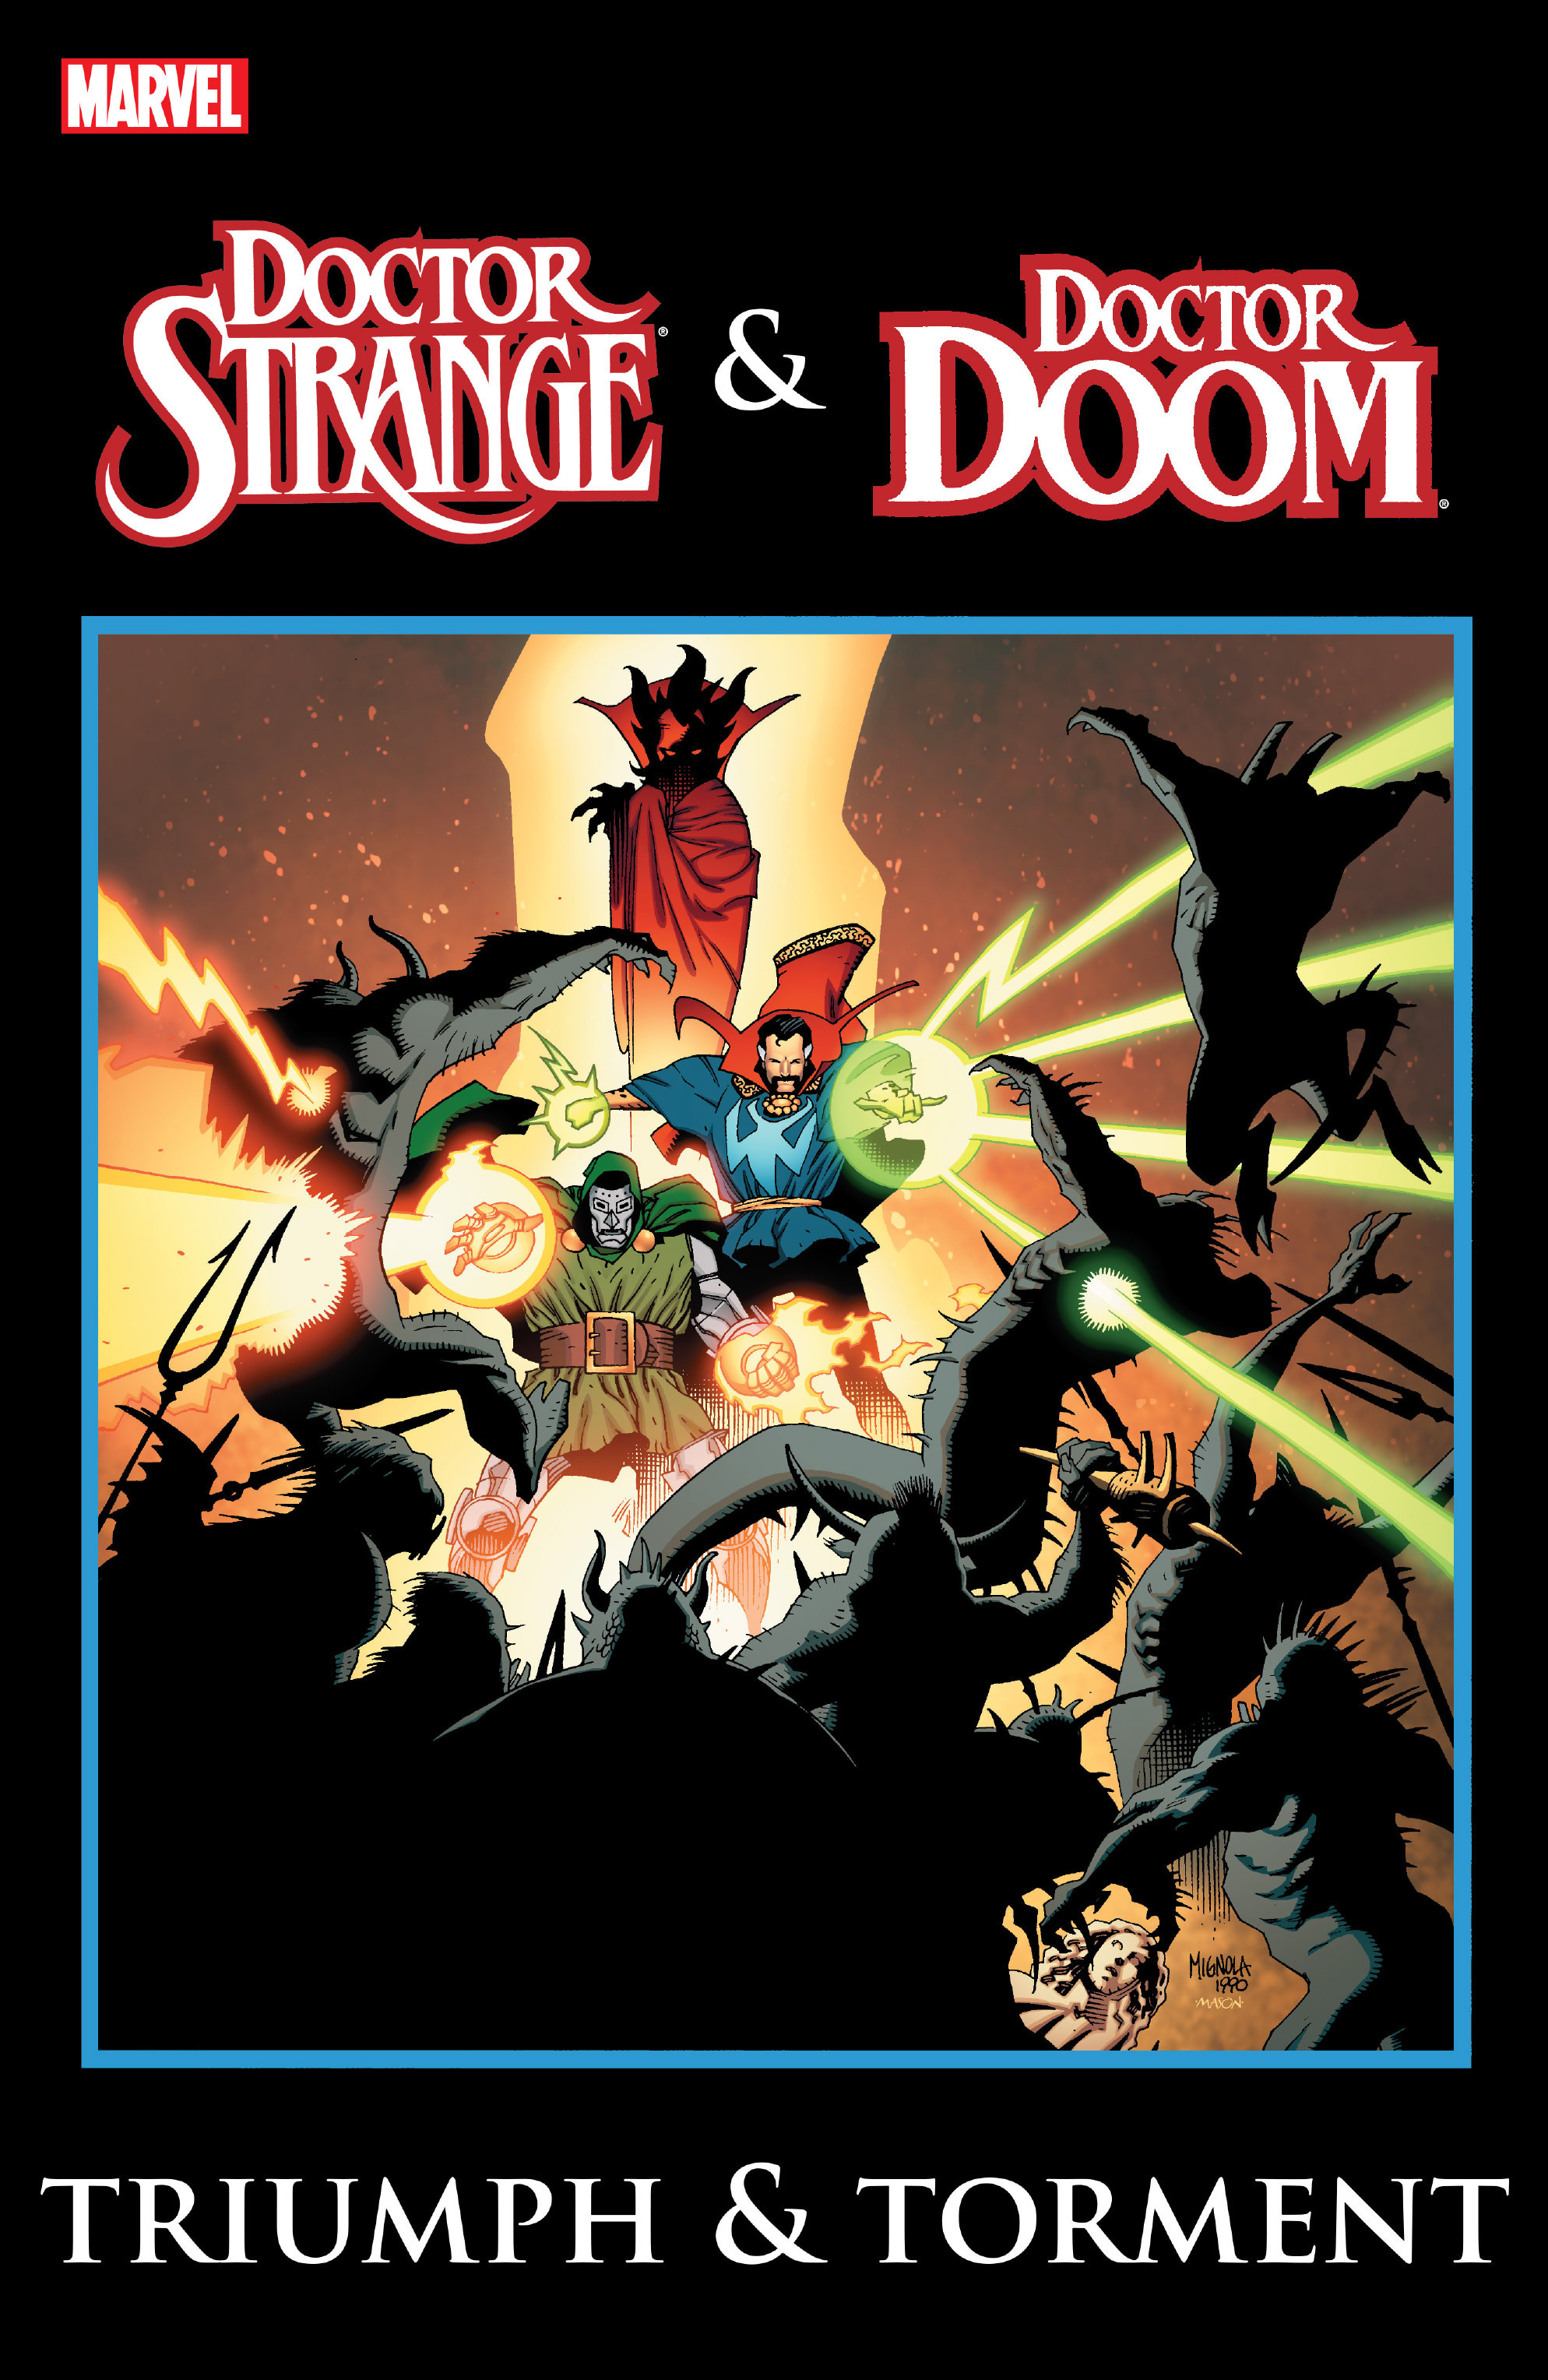 Doctor Strange & Doctor Doom: Triumph and Torment Full Page 1